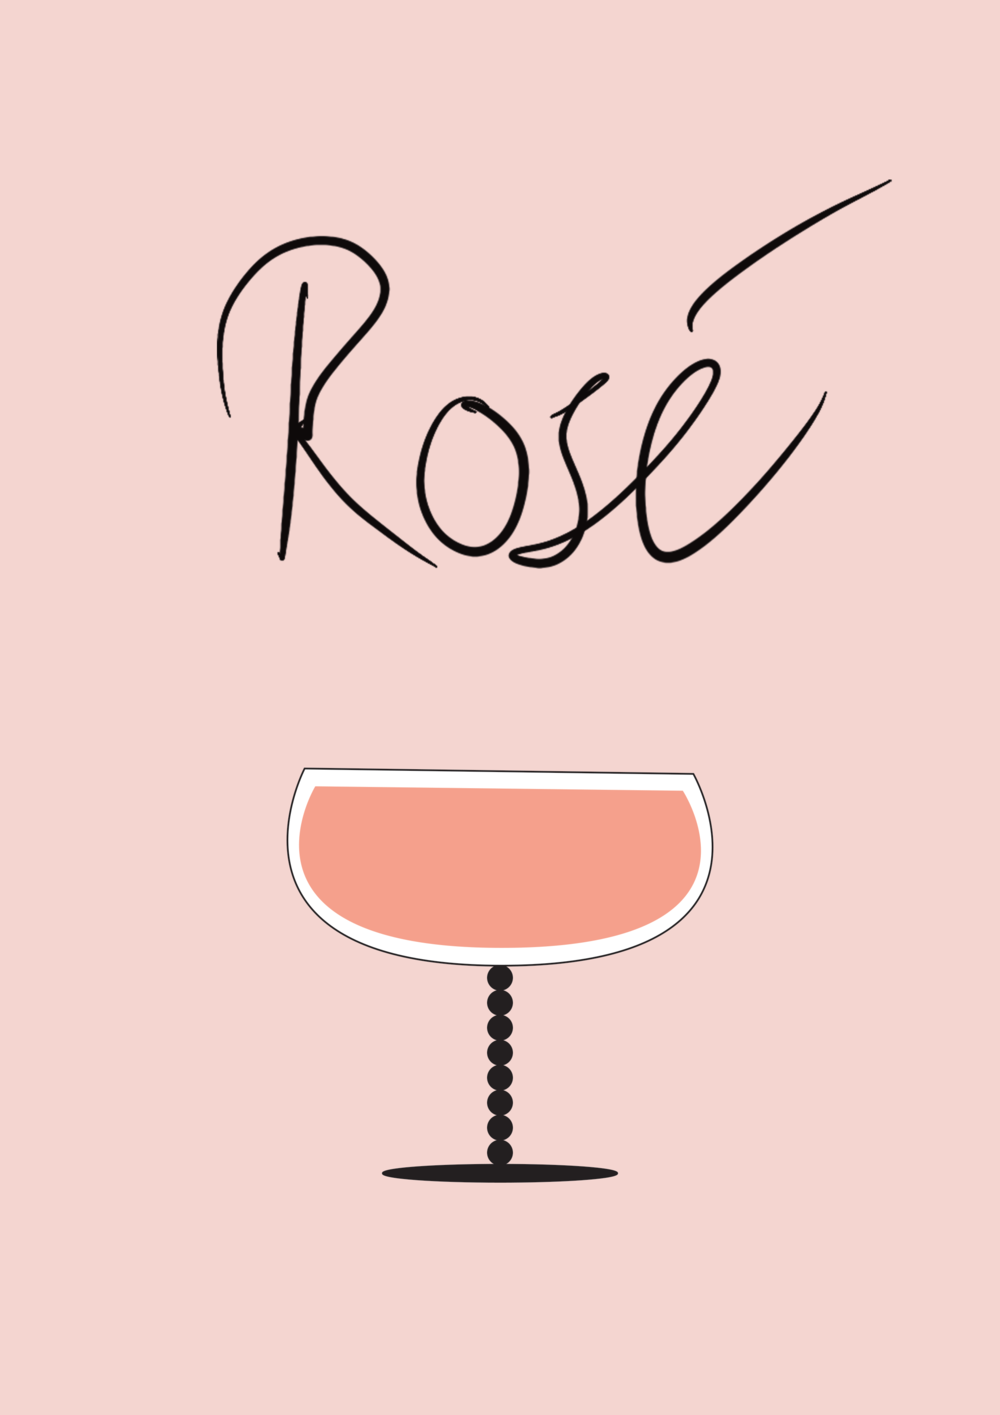 Rosé Wine Illustration // Phylleli Design Studio and Blog